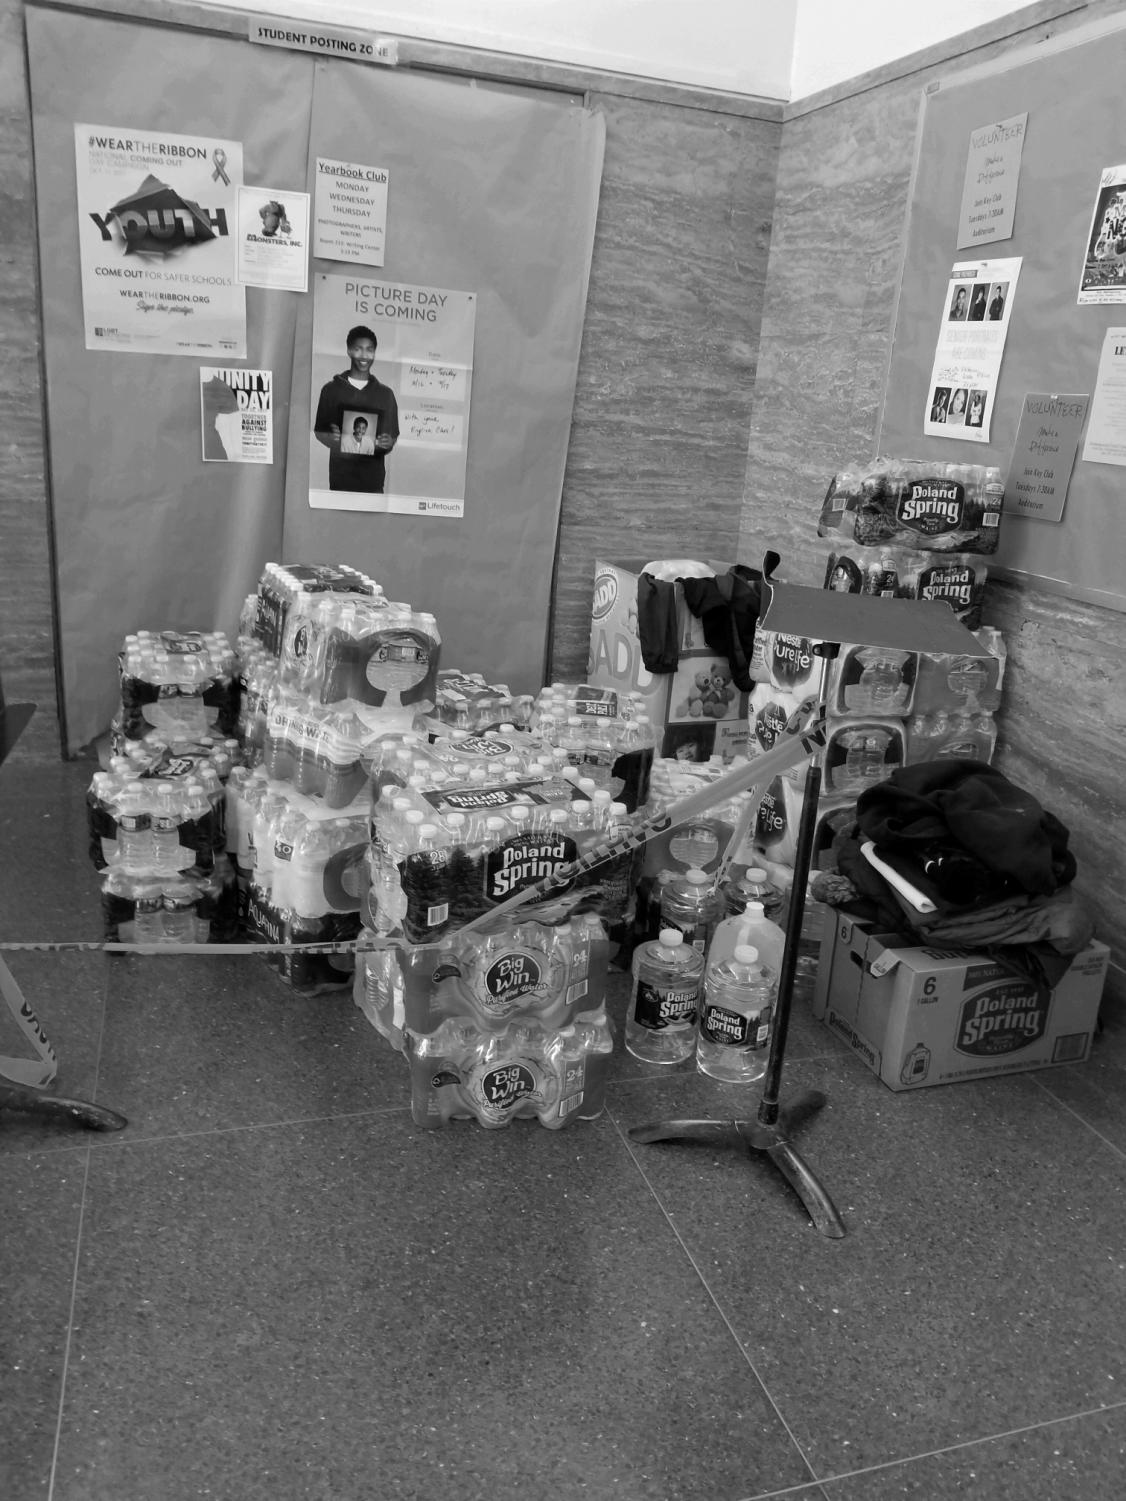 Schreiber collected donations of water bottles from students in the main lobby